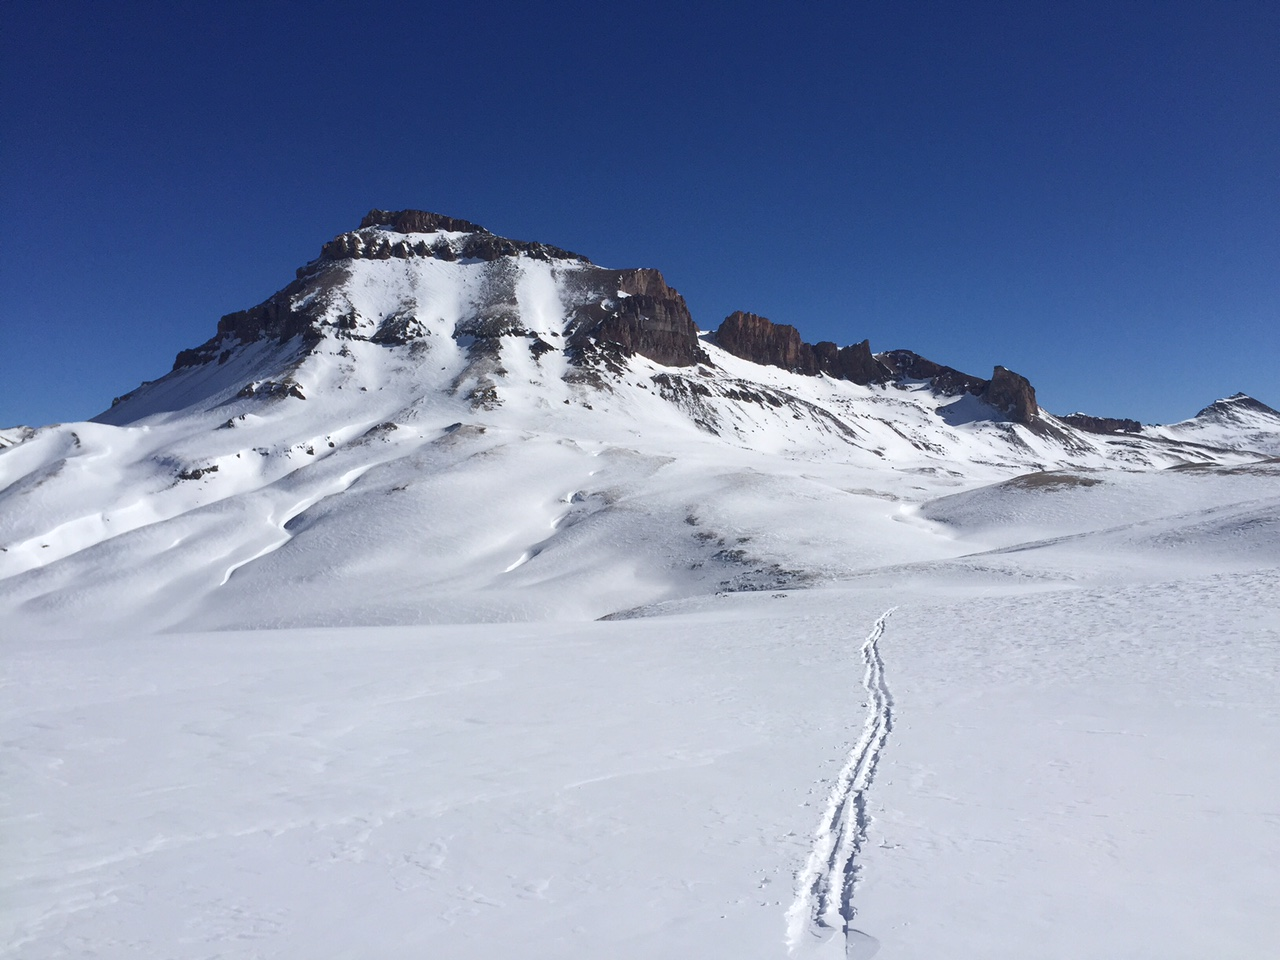 Looking back at Uncompahgre's west face and my tracks as I headed towards Wetterhorn.